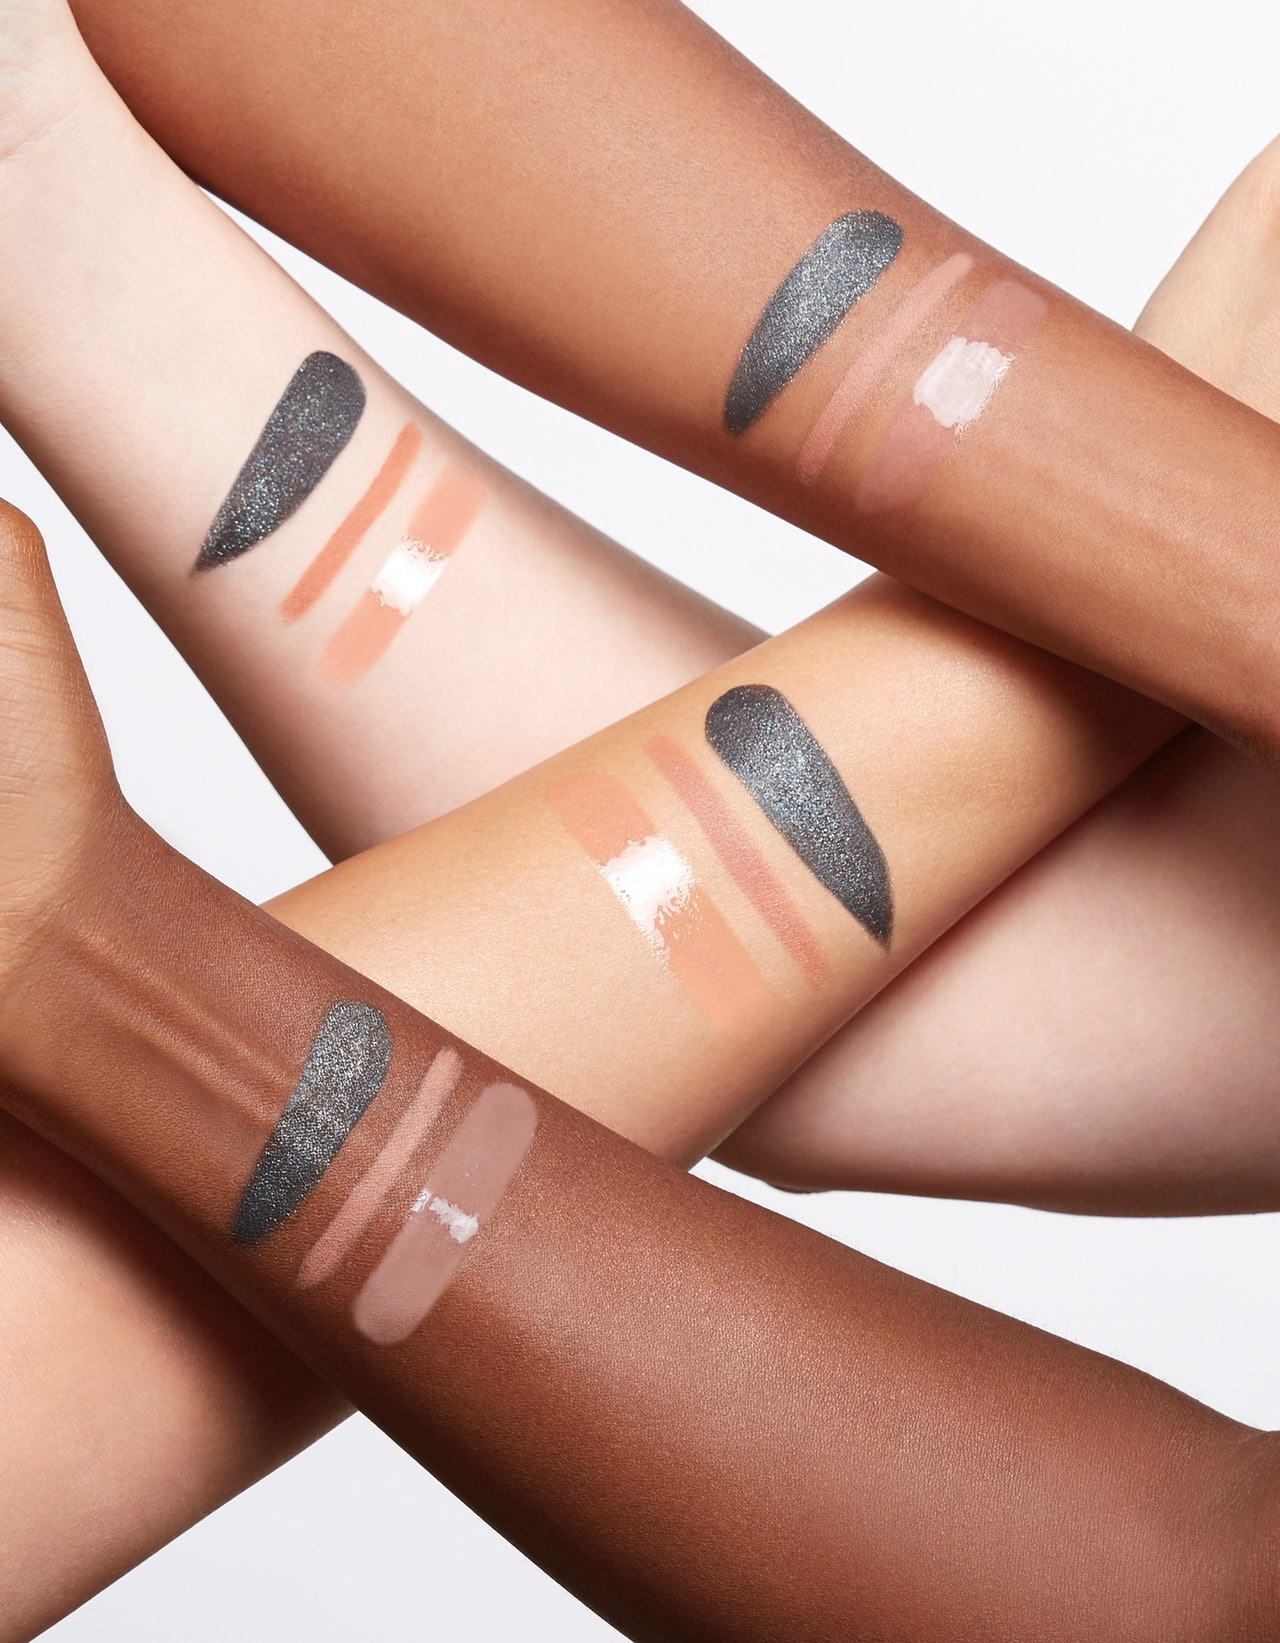 Double Take Contour Stick by UOMA Beauty #11